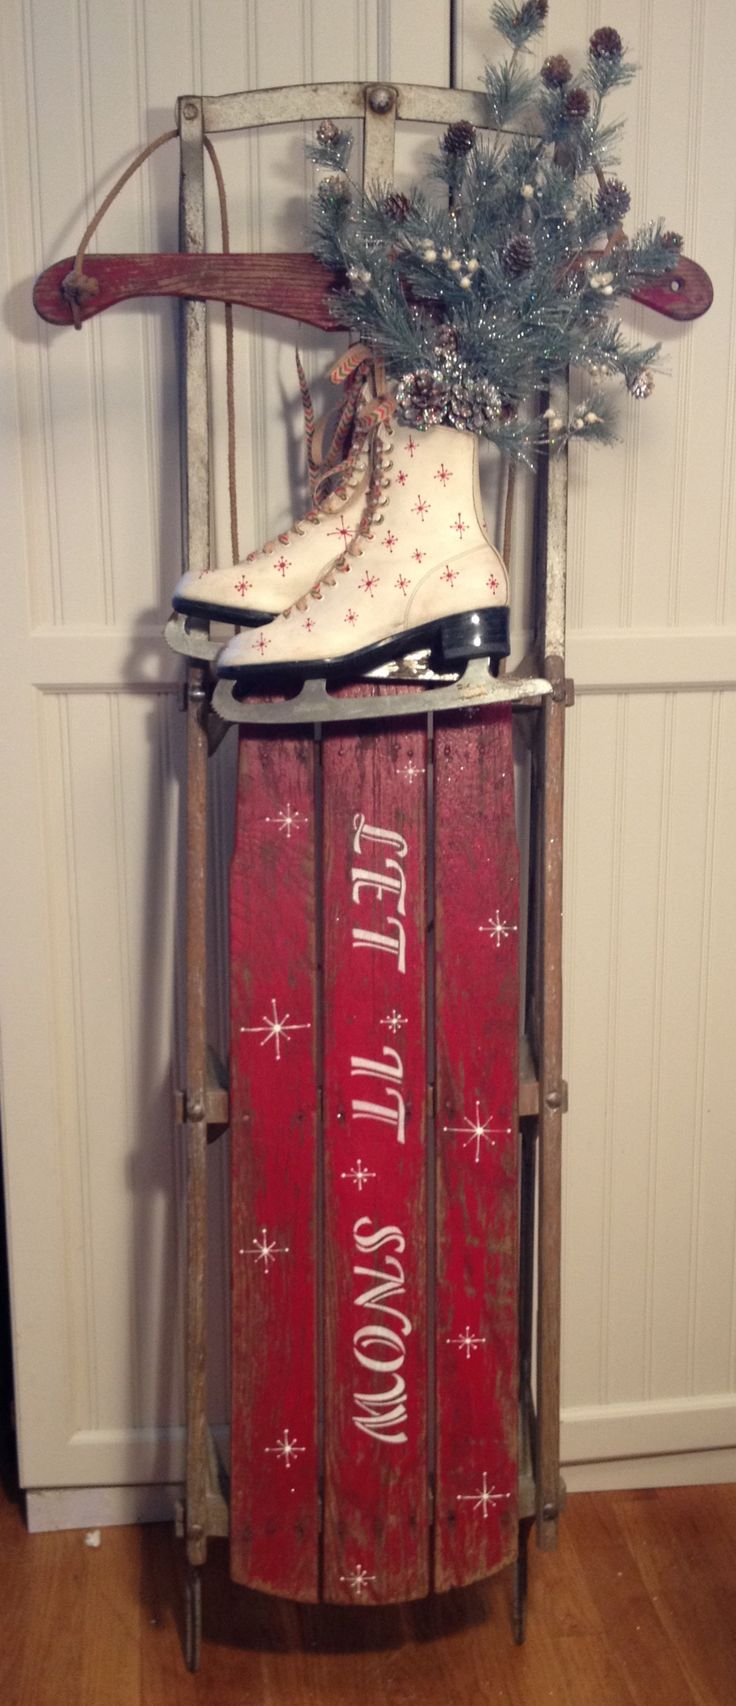 1000 images about painted sleds on pinterest sled christmas sled and snowman. Black Bedroom Furniture Sets. Home Design Ideas